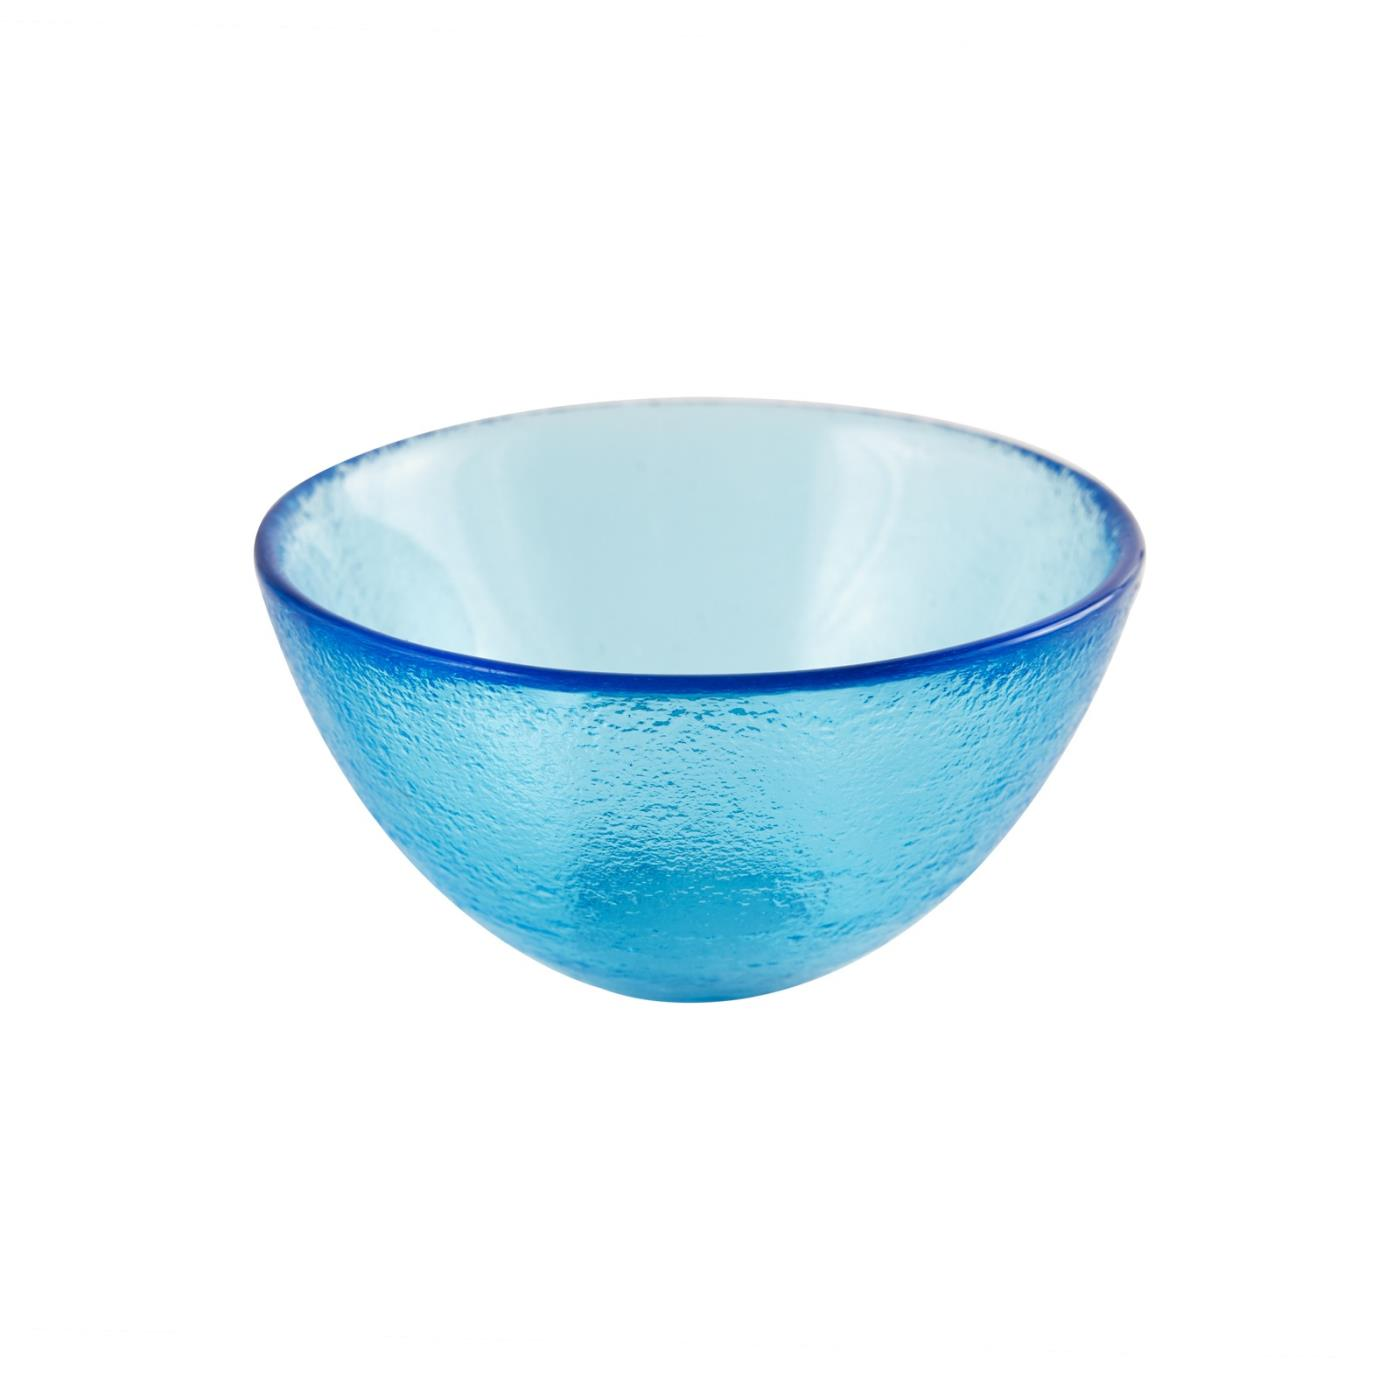 "Glass Dipping Bowl 3.25"" - Ocean Blue"